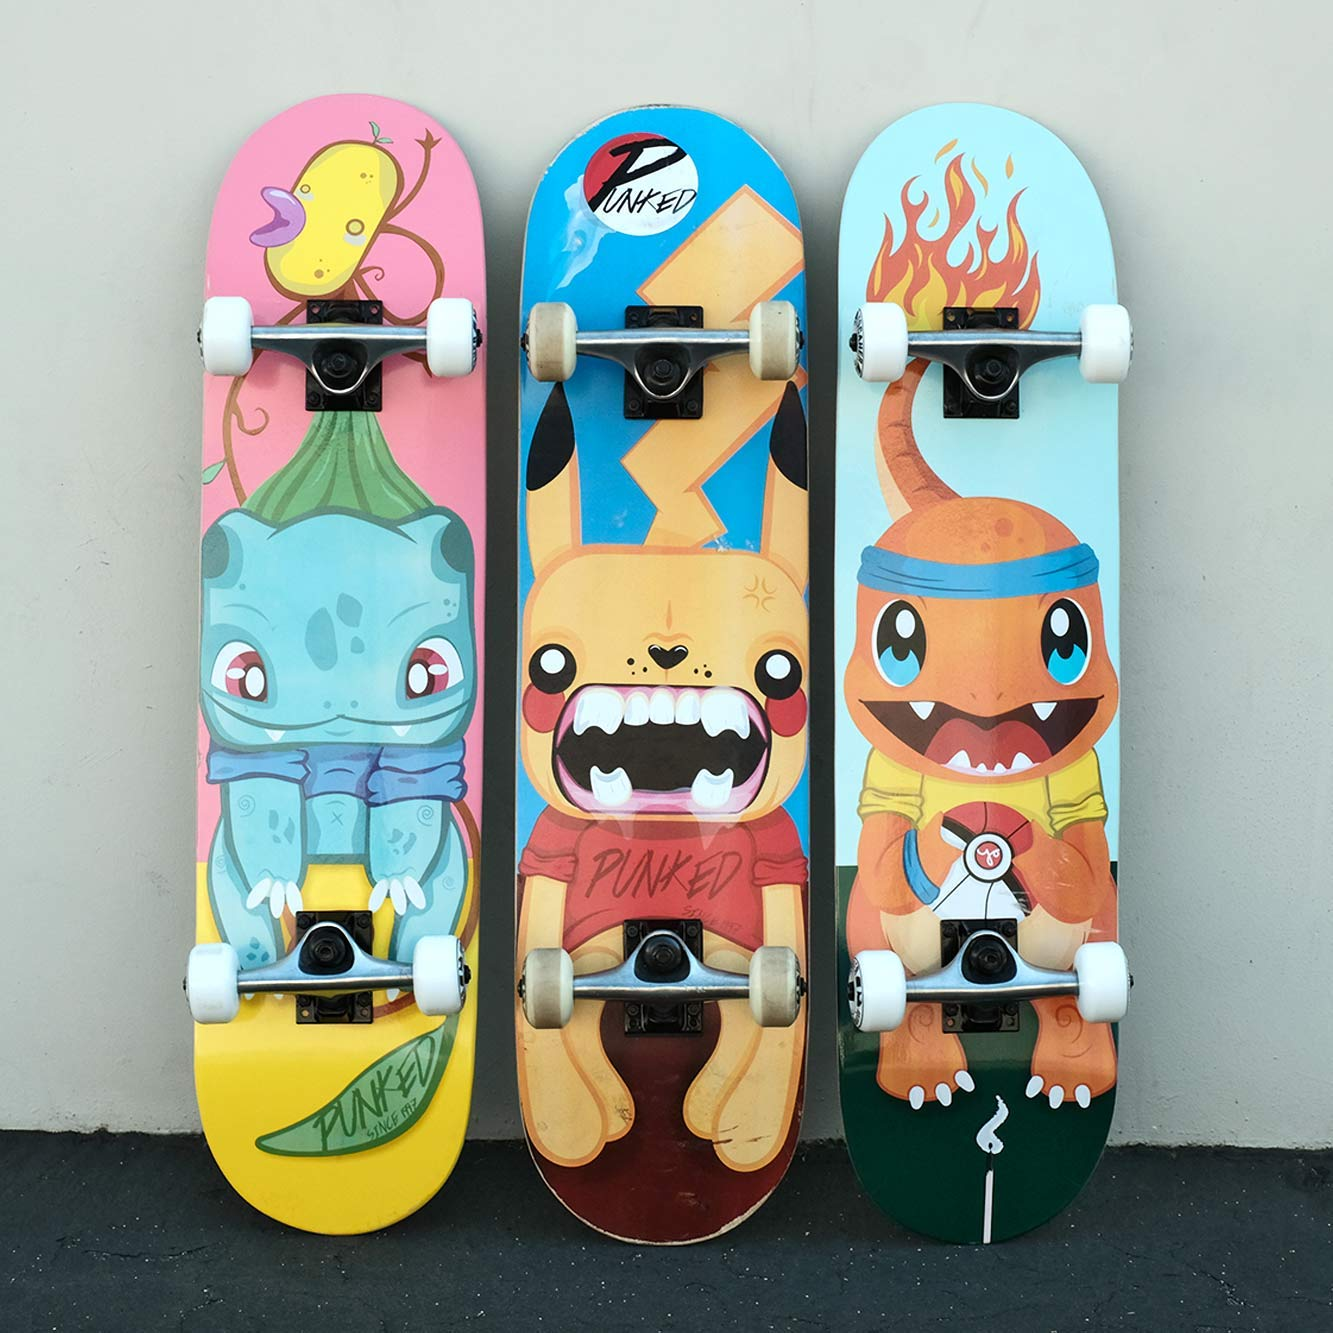 Yocaher Punked Complete Skateboards 7.75'' or Mini Cruiser or Micro Cruiser Shapes - Pika and Chimp Series (Complete -01-7.75'' Pika)